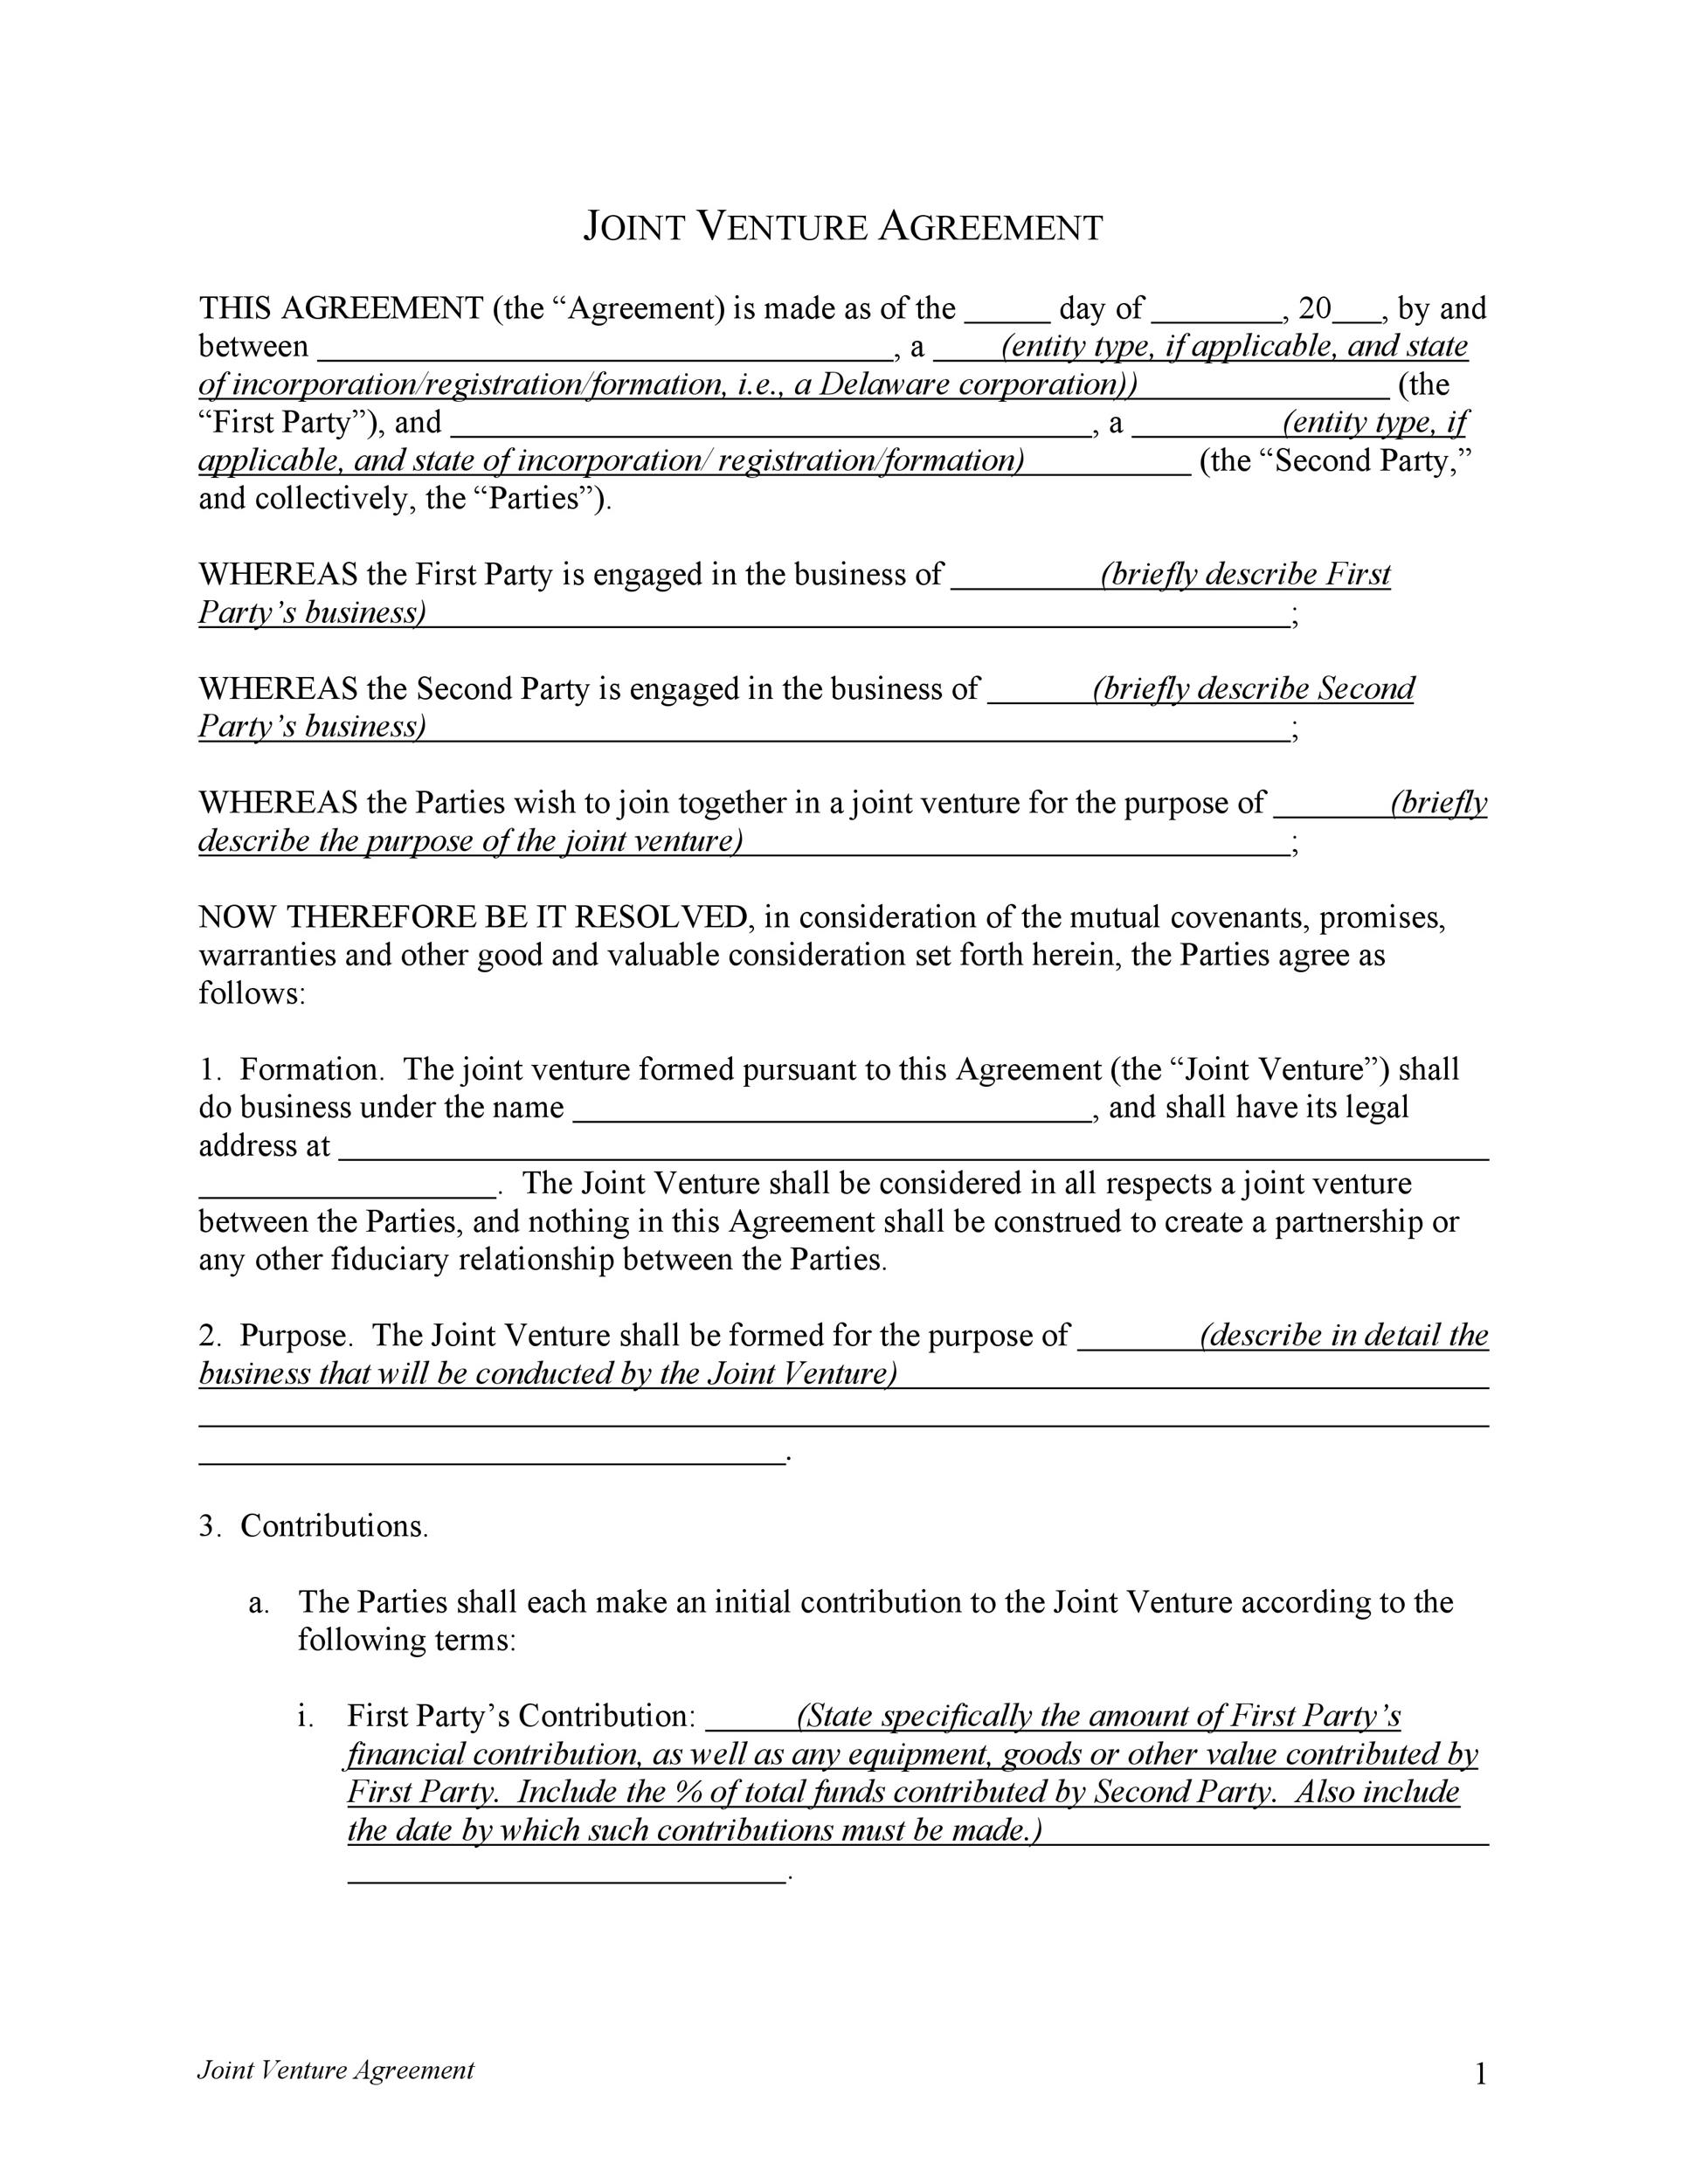 53 Simple Joint Venture Agreement Templates PDF, DOC - Template Lab - Heads Of Agreement Template Free